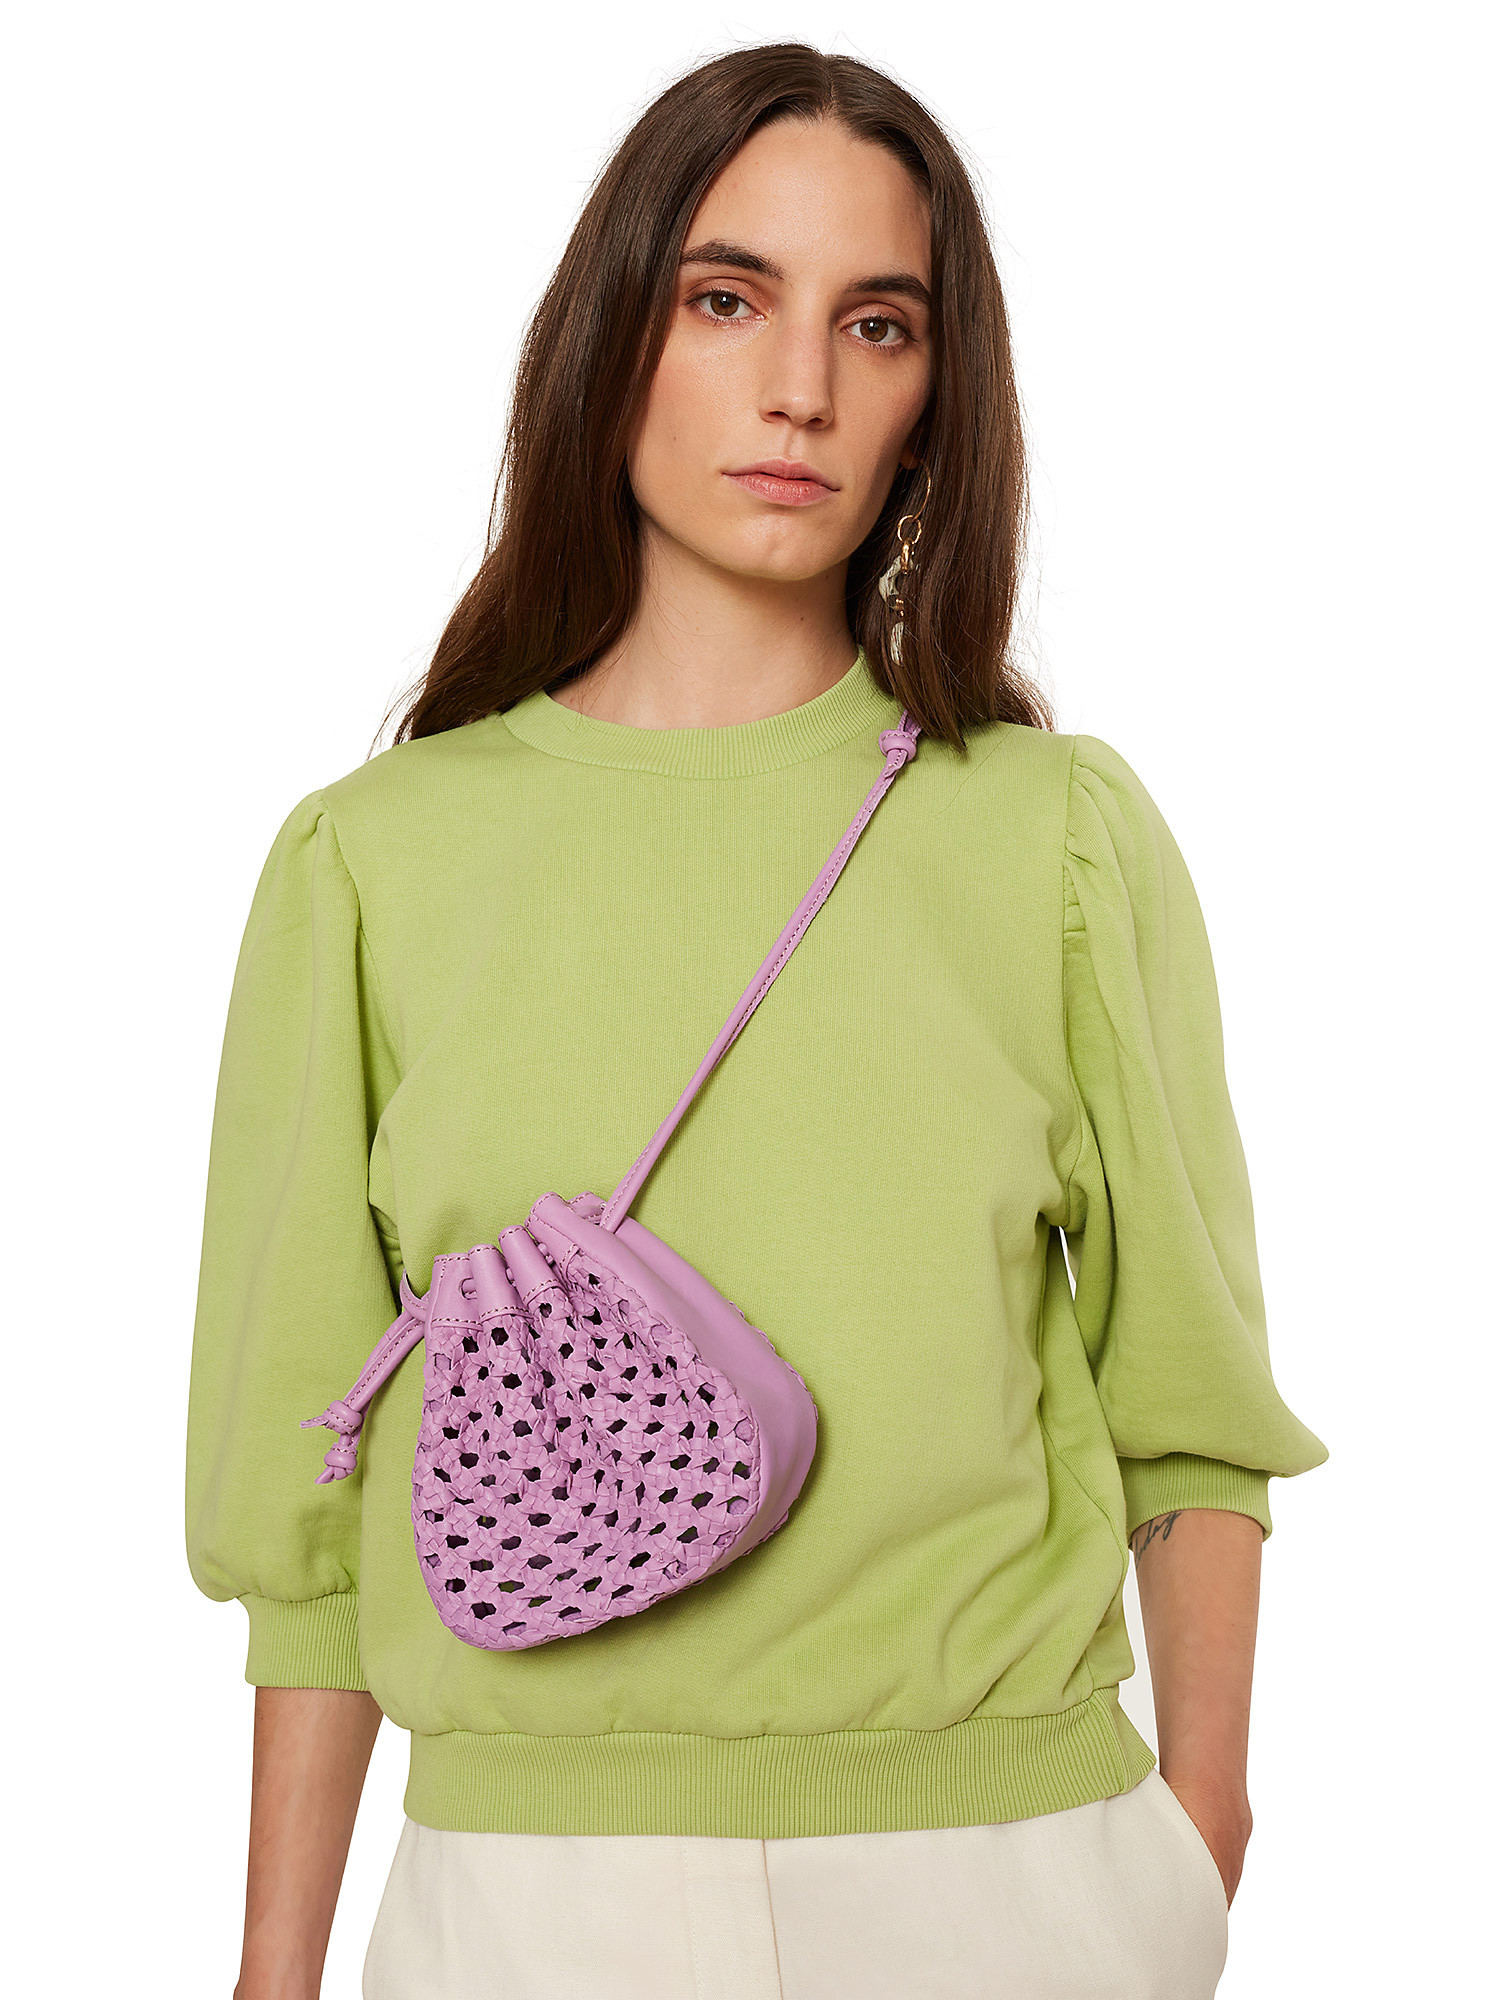 Maglia donna in cotone, Verde lime, large image number 3